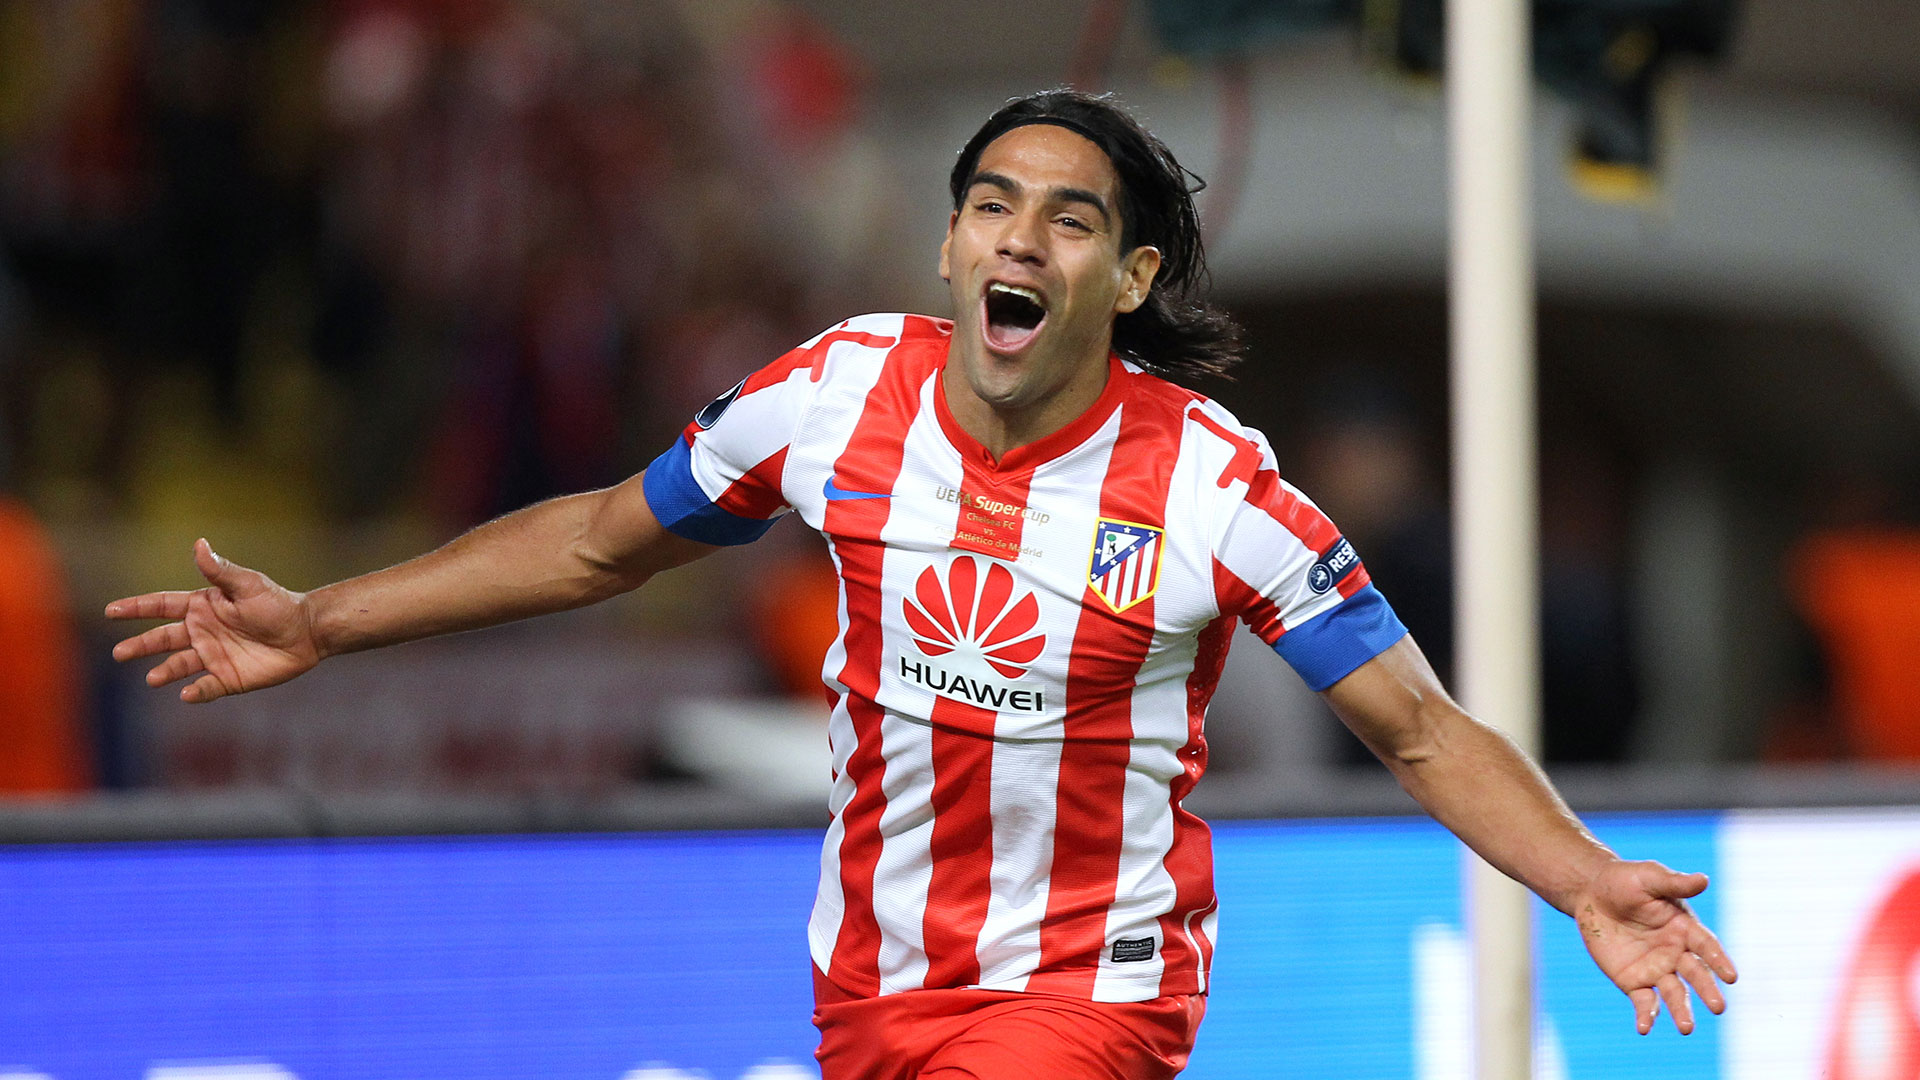 Radamel Falcao Atletico Madrid